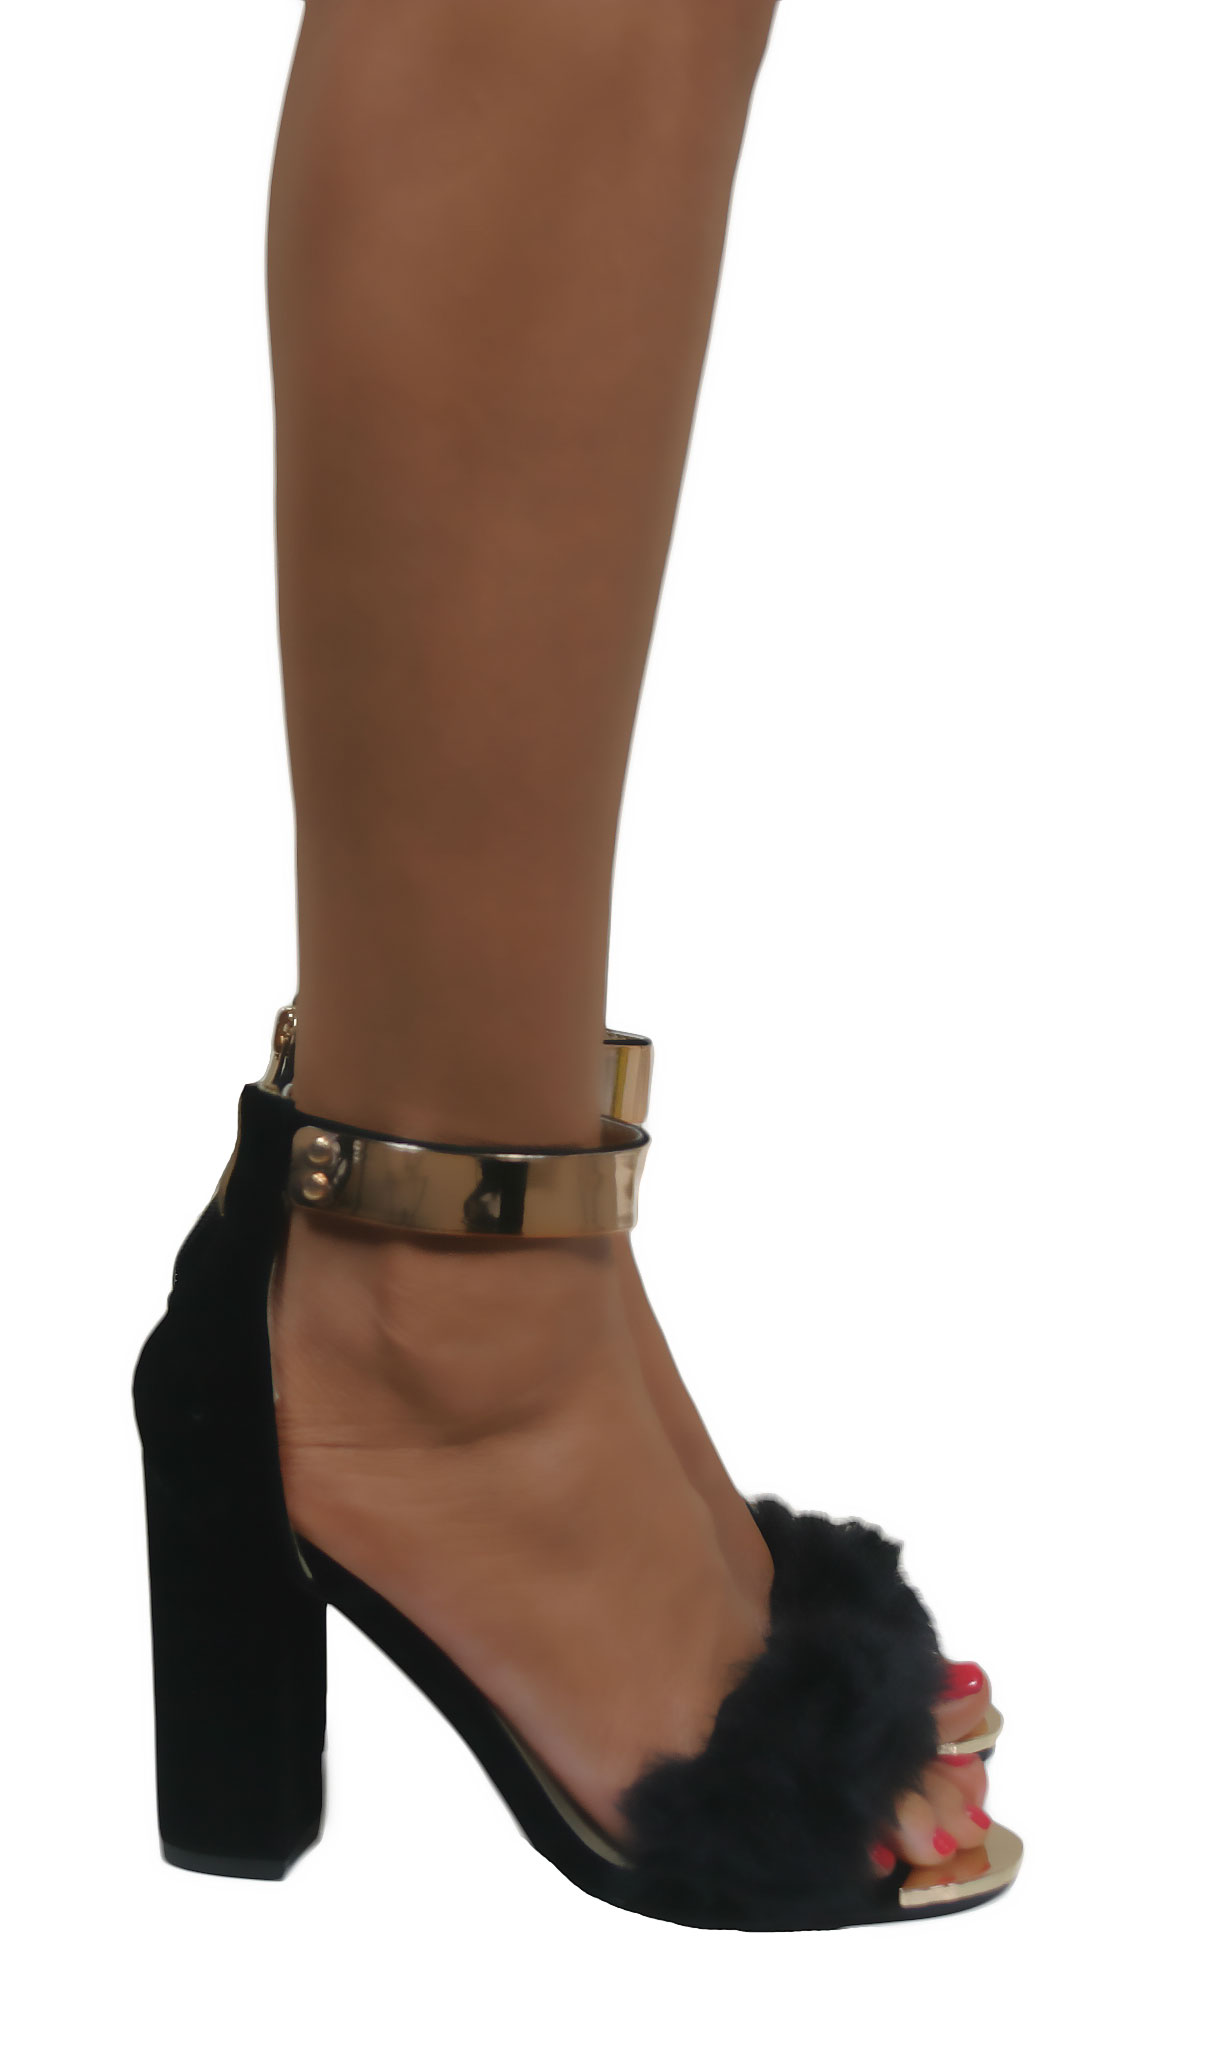 Black Heels With Gold Ankle Cuff